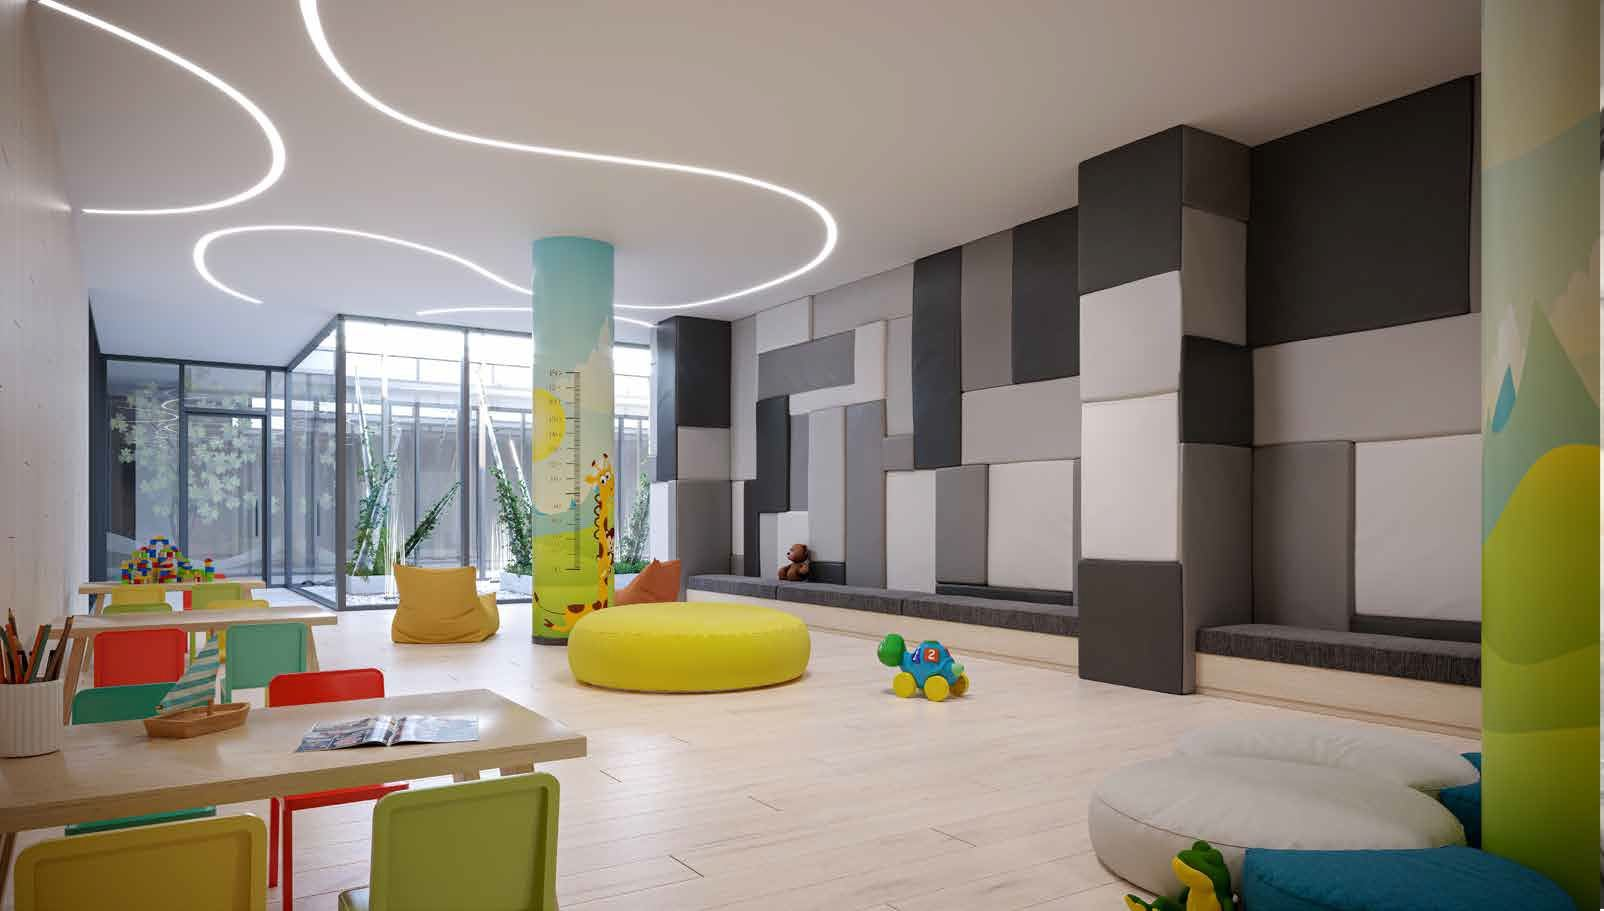 2020_07_06_10_36_44_28eastern_alterra_rendering_kidsplayroom